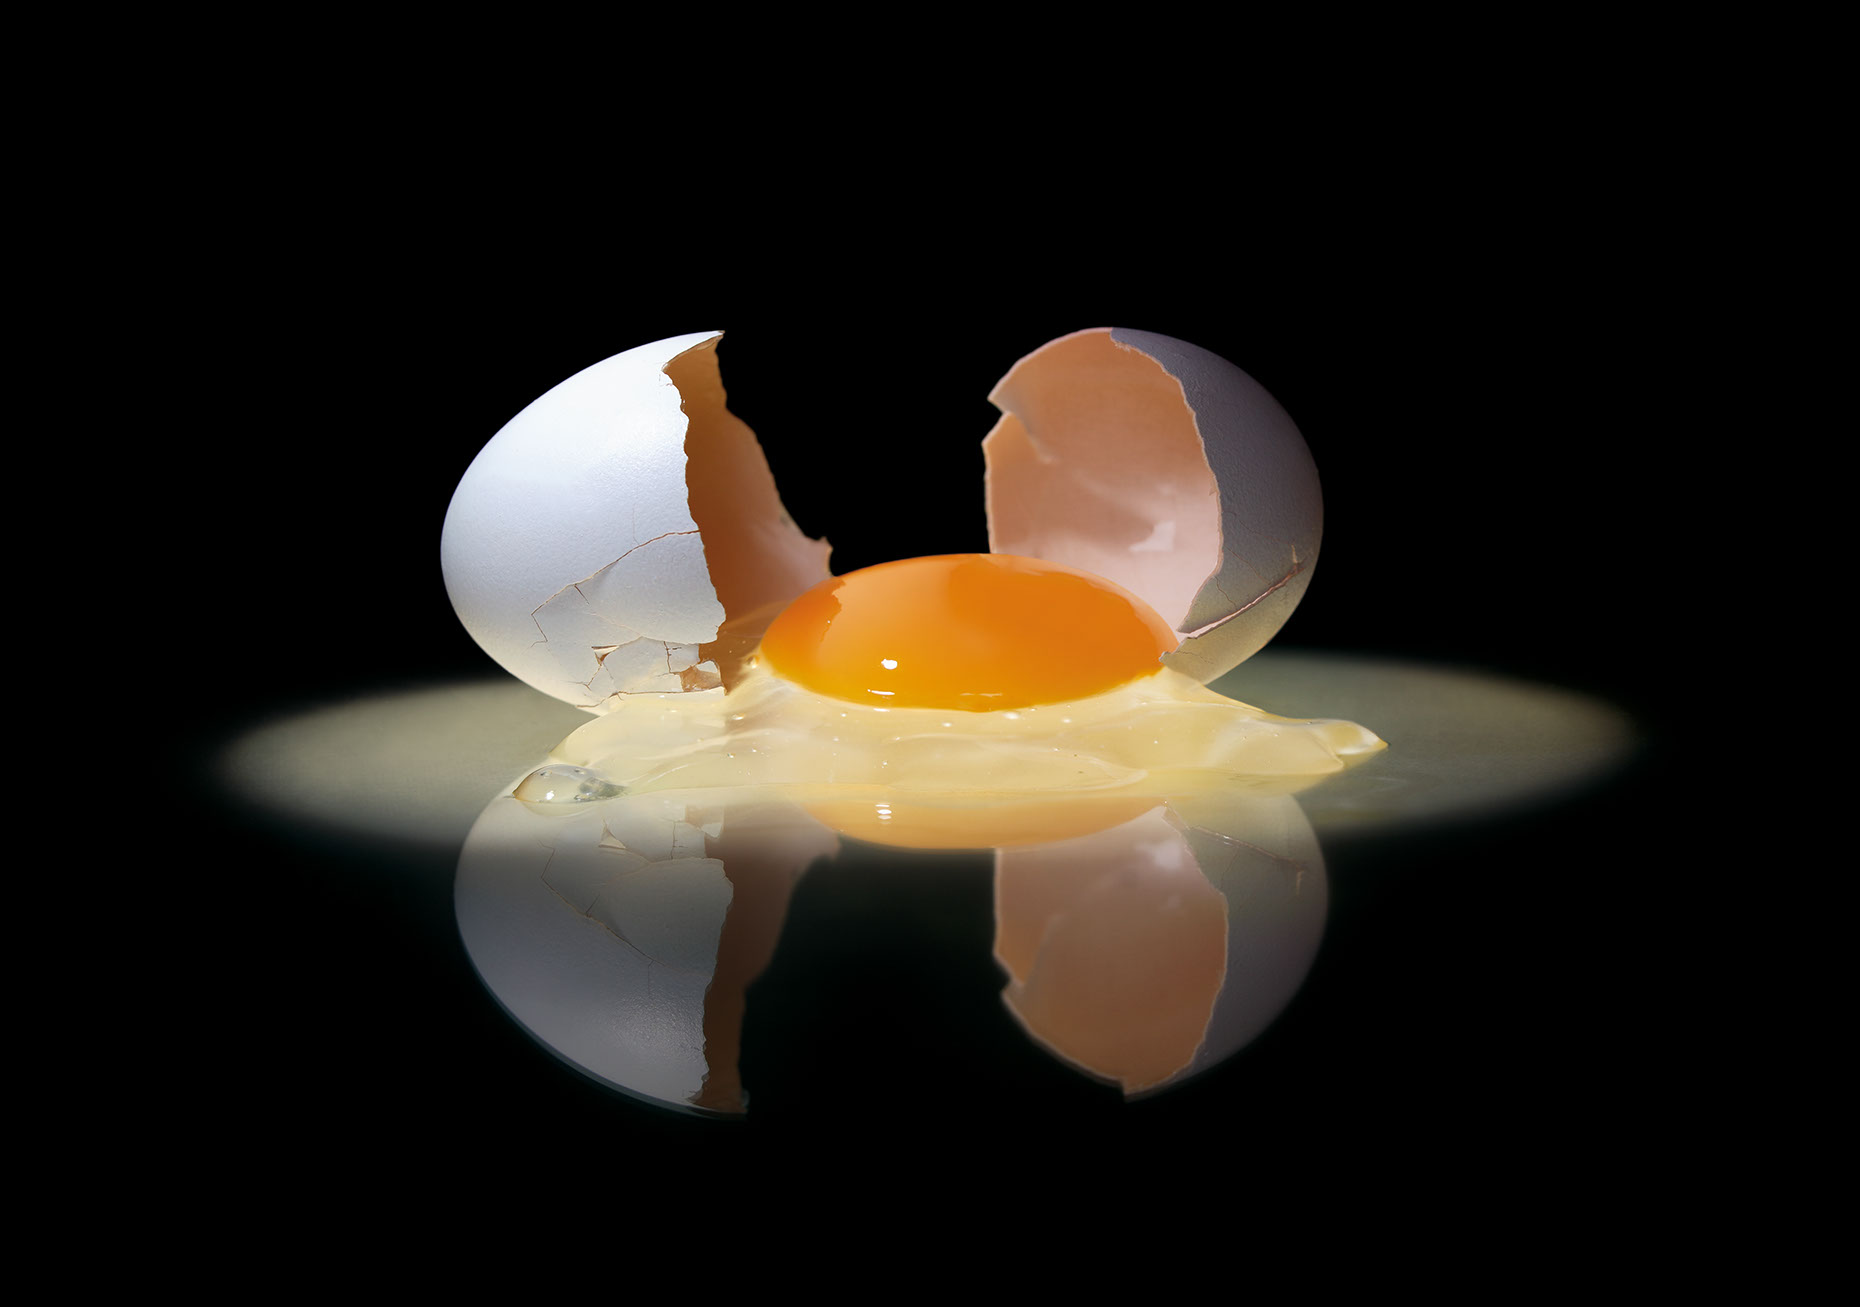 Photo-Imaging_Food_Broken egg-Frank Neidhardt